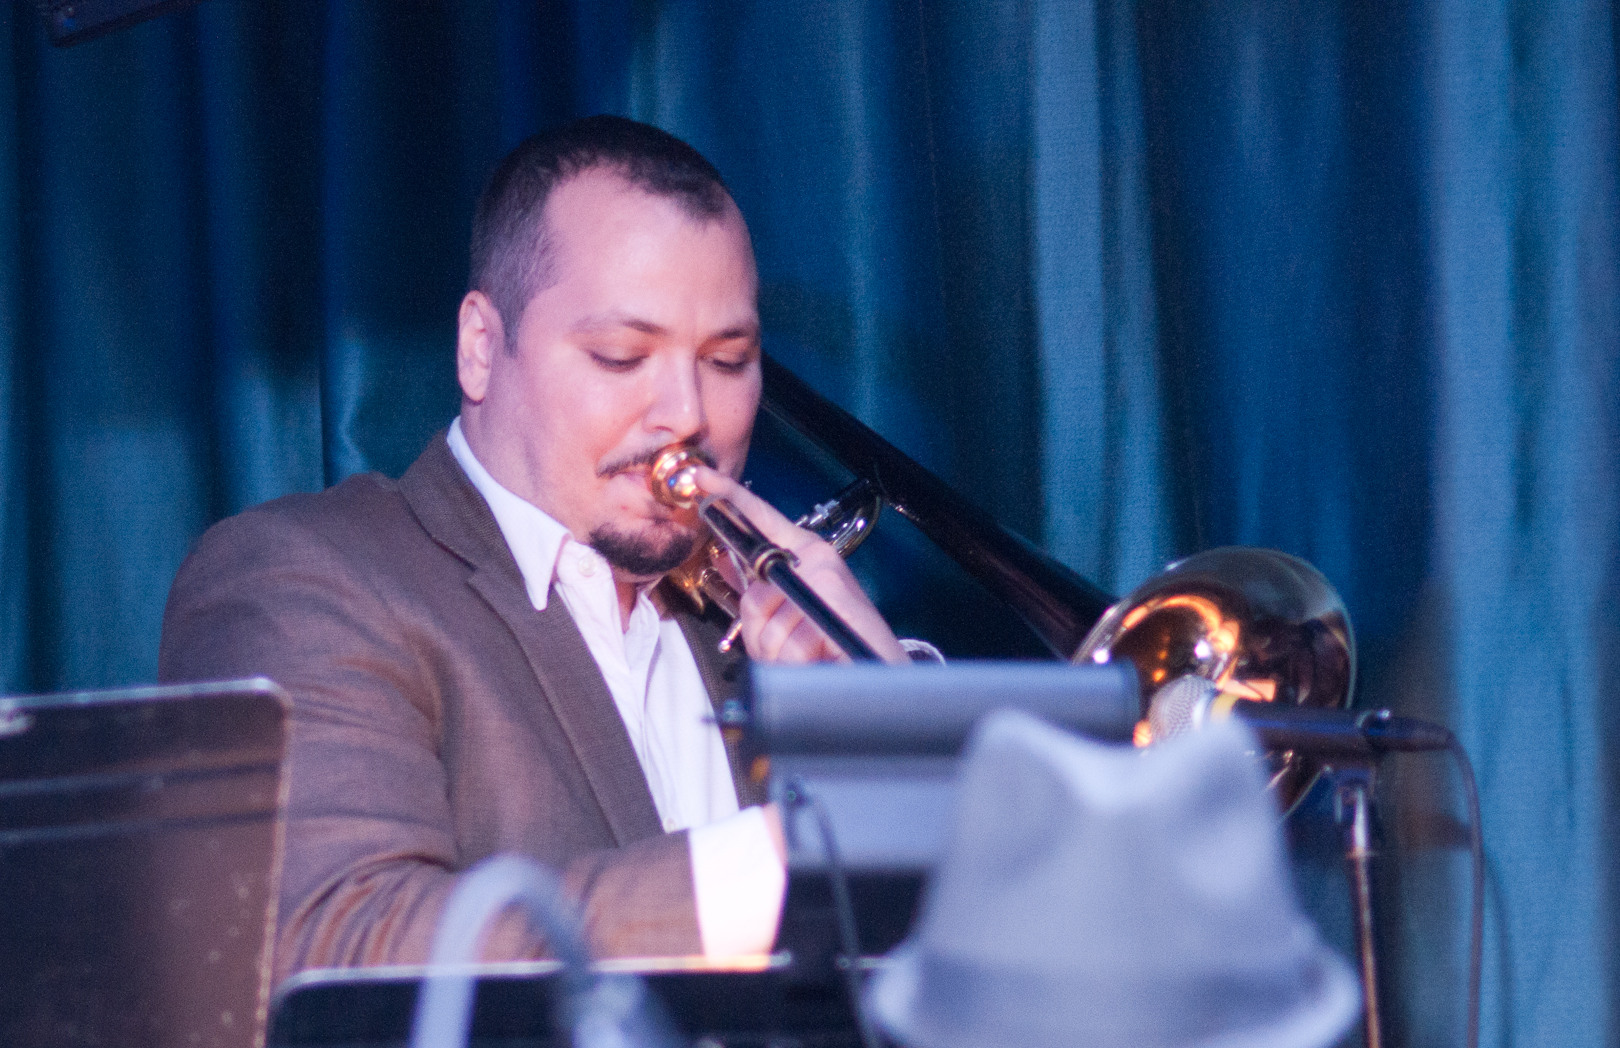 Michael Dease with the Wayne Shorter Tribute Big Band